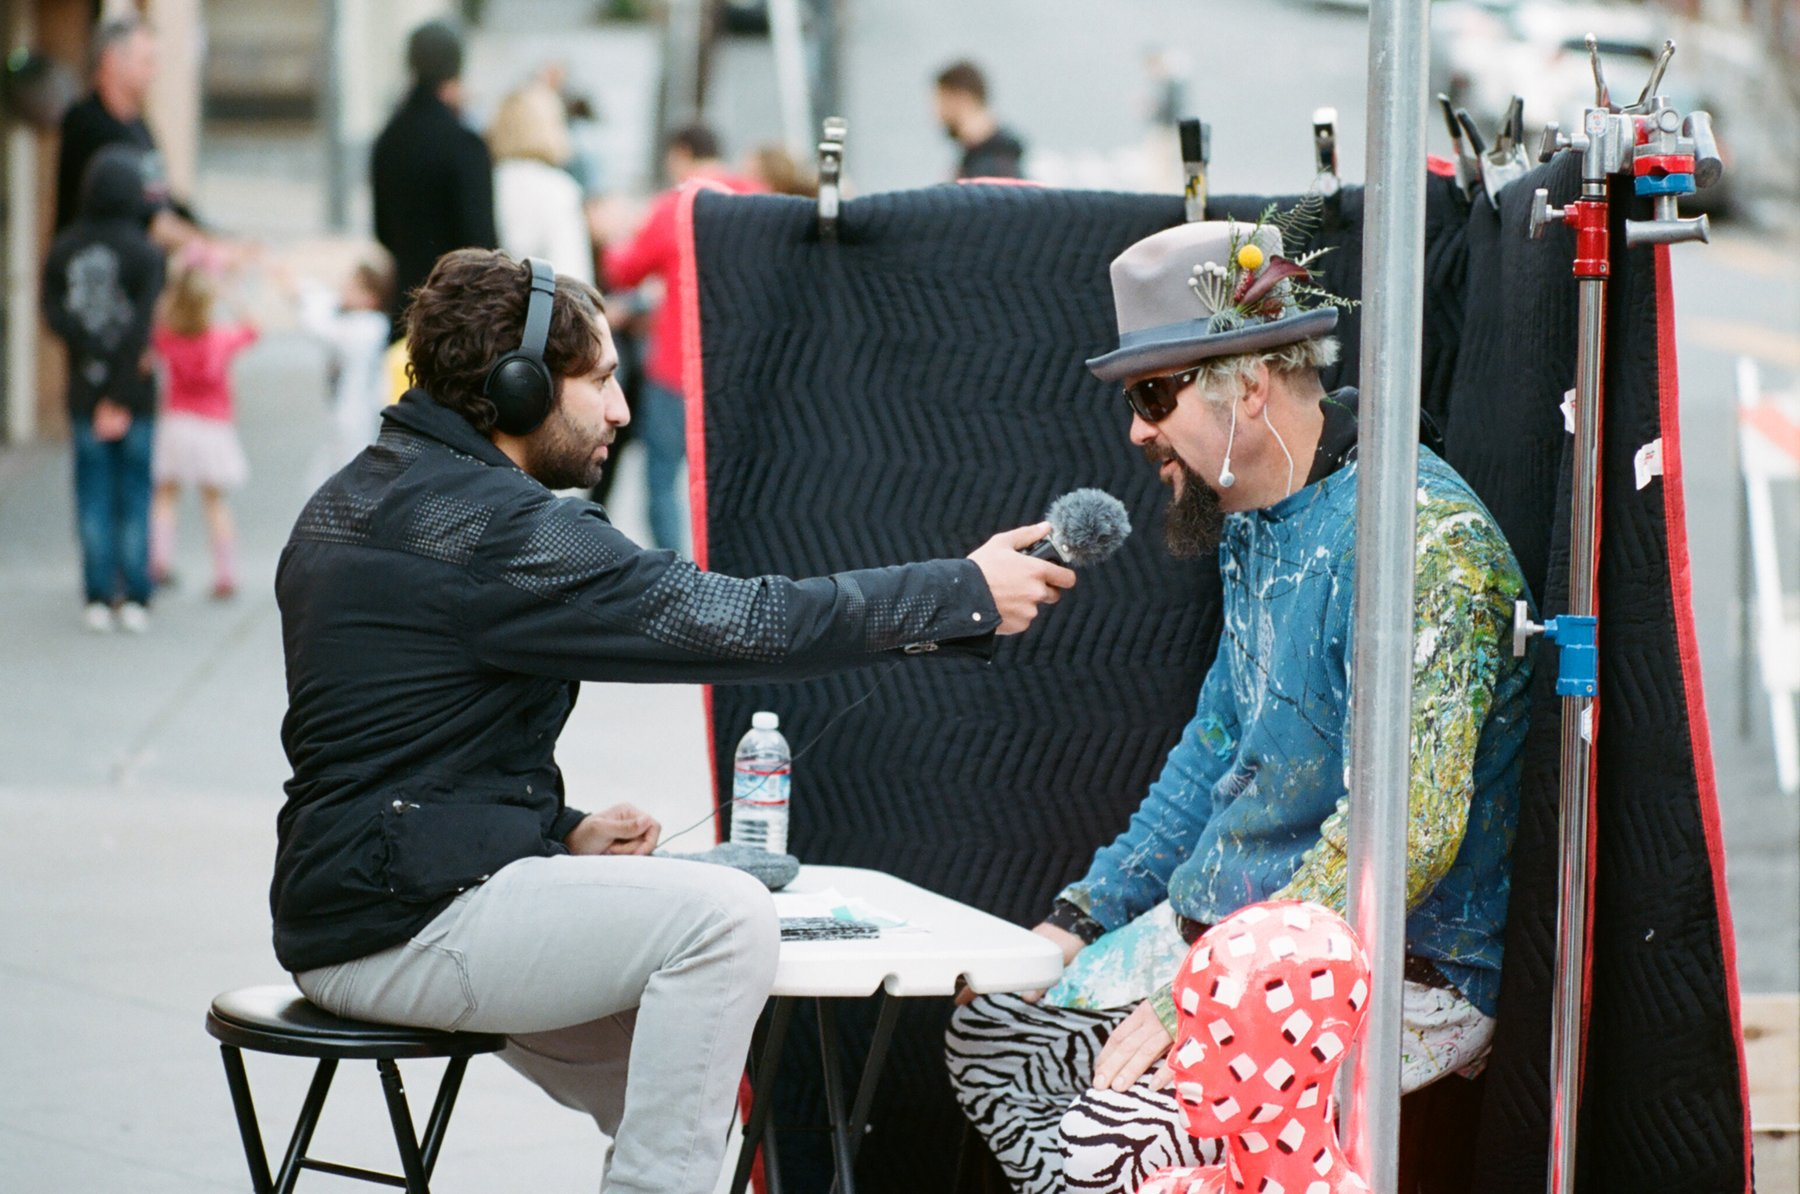 a person dressed in eccentric prints is interviewed on a sidewalk